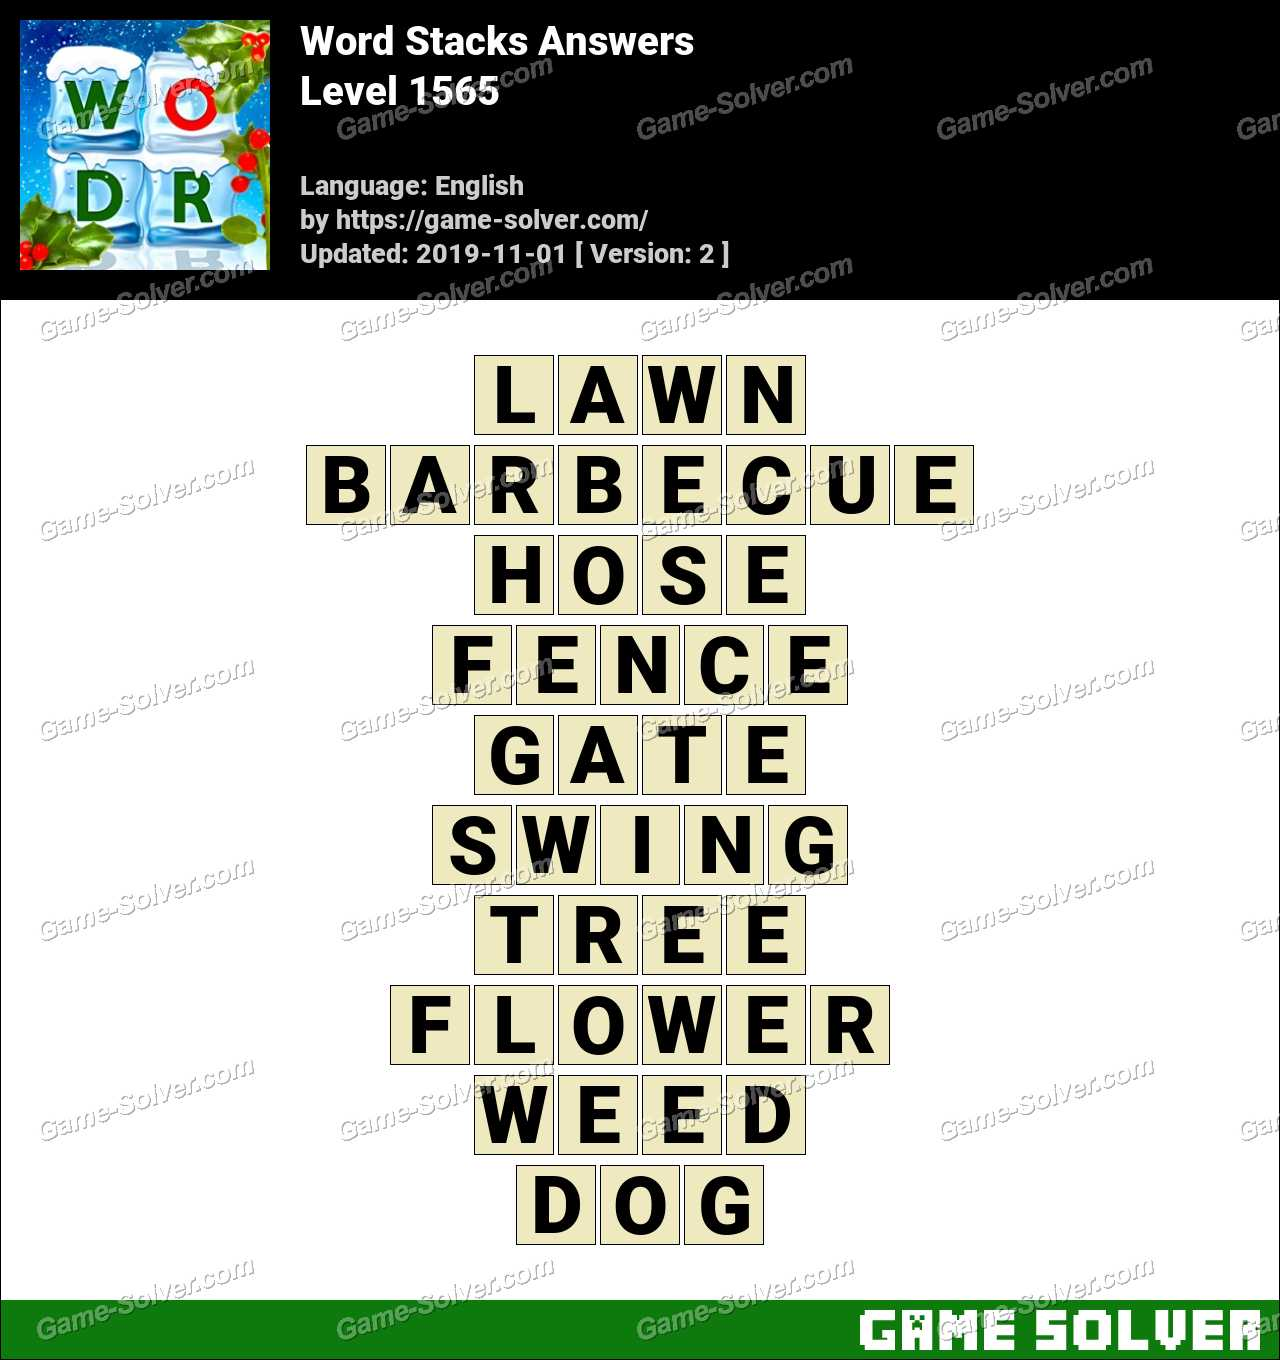 Word Stacks Level 1565 Answers